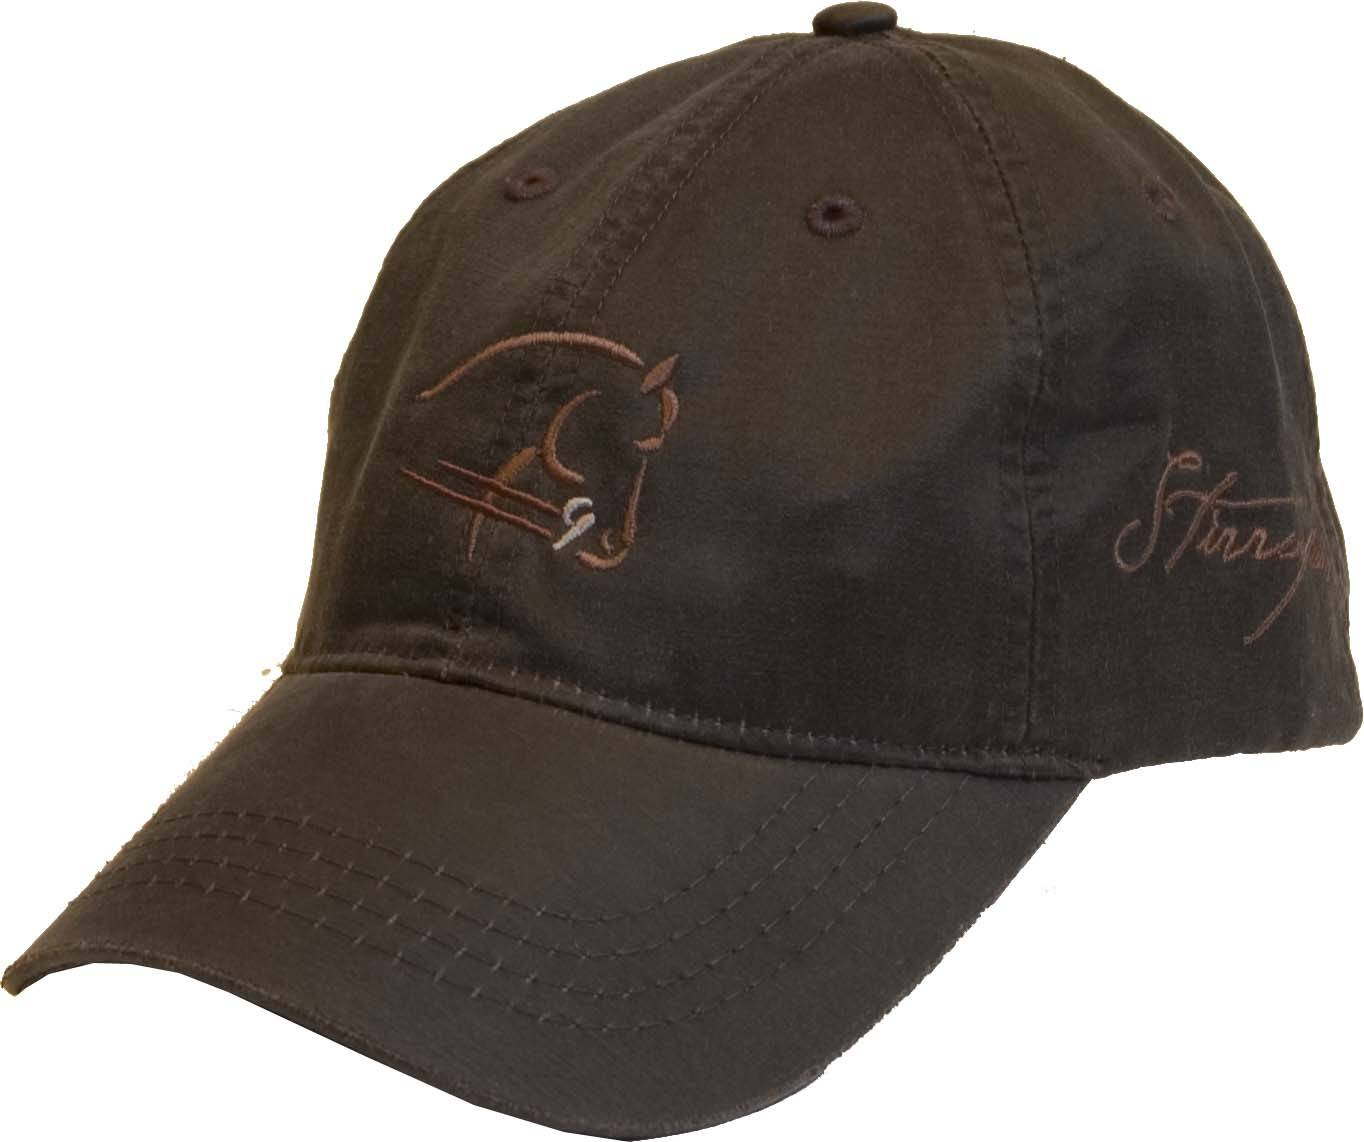 Stirrups Ladies Embroidered Horse Head Outline Weathered Cotton Cap